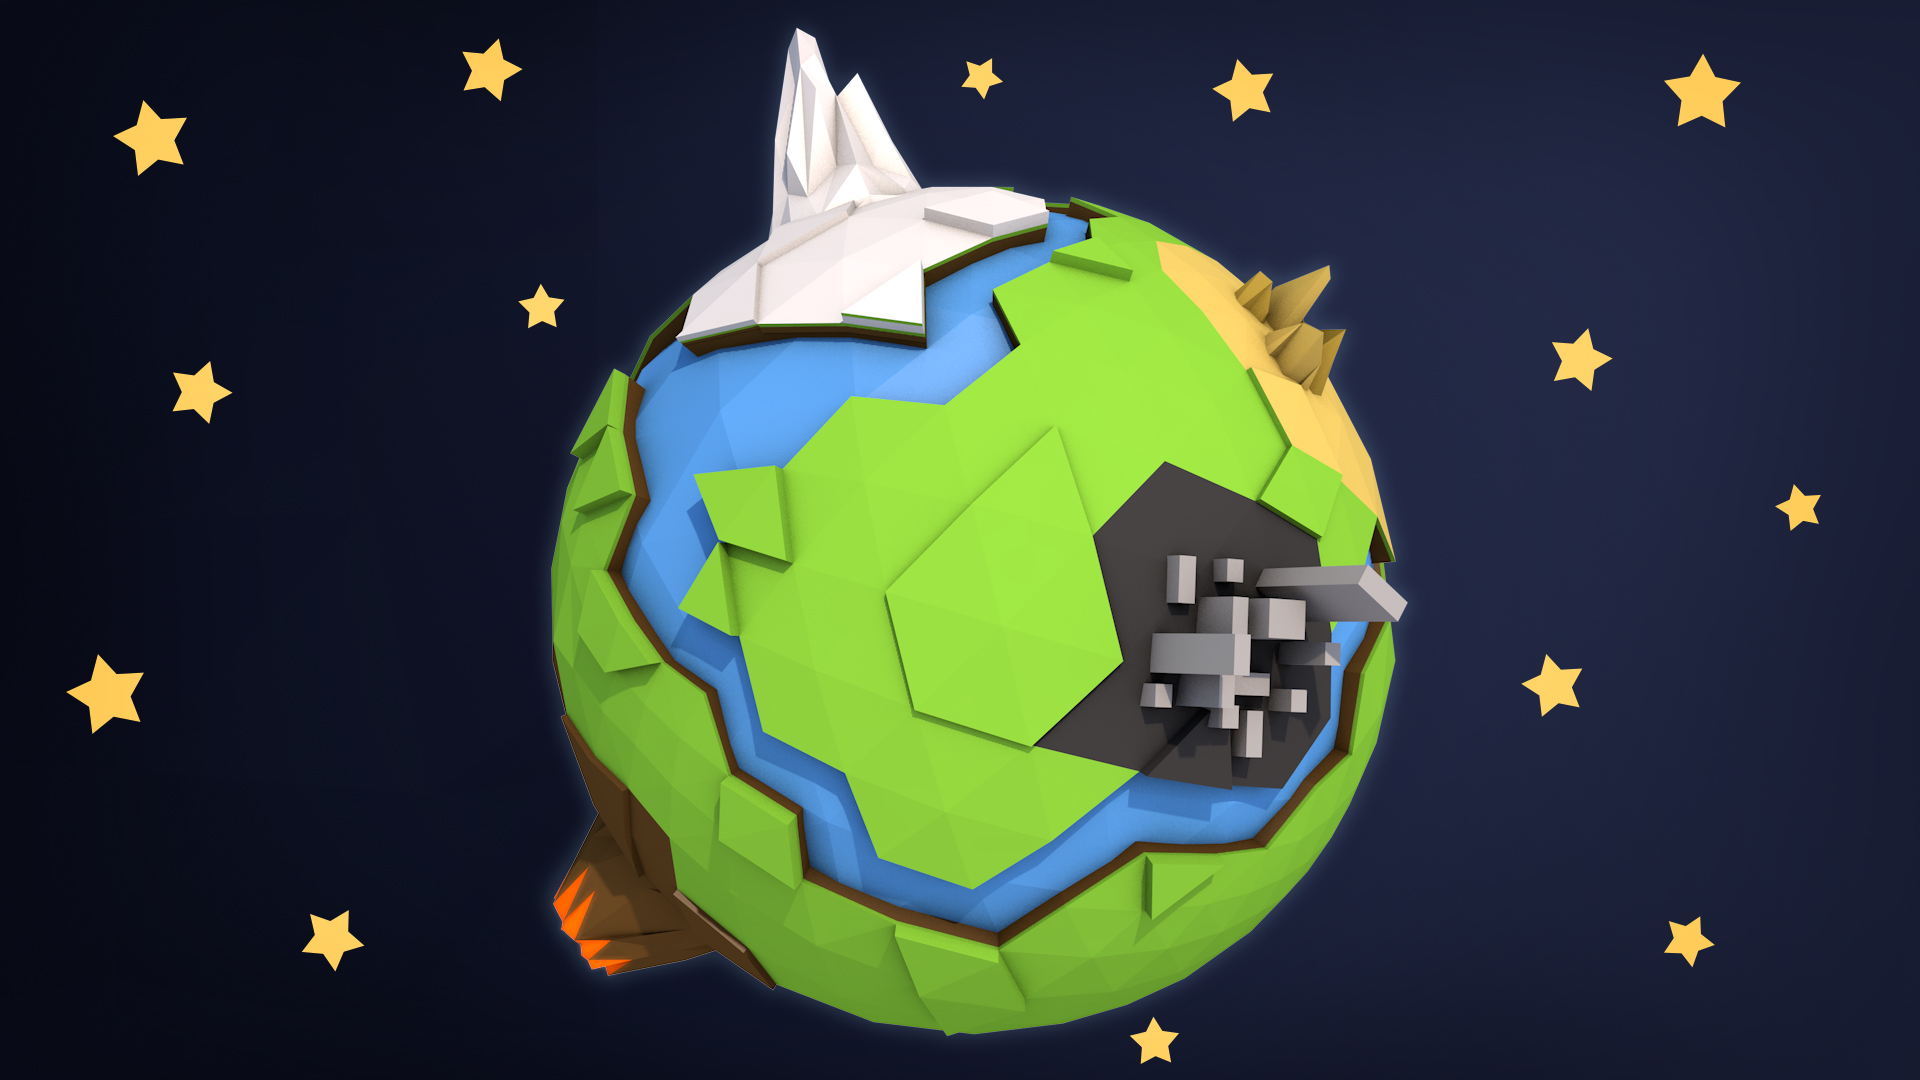 Low Poly 3D modelling